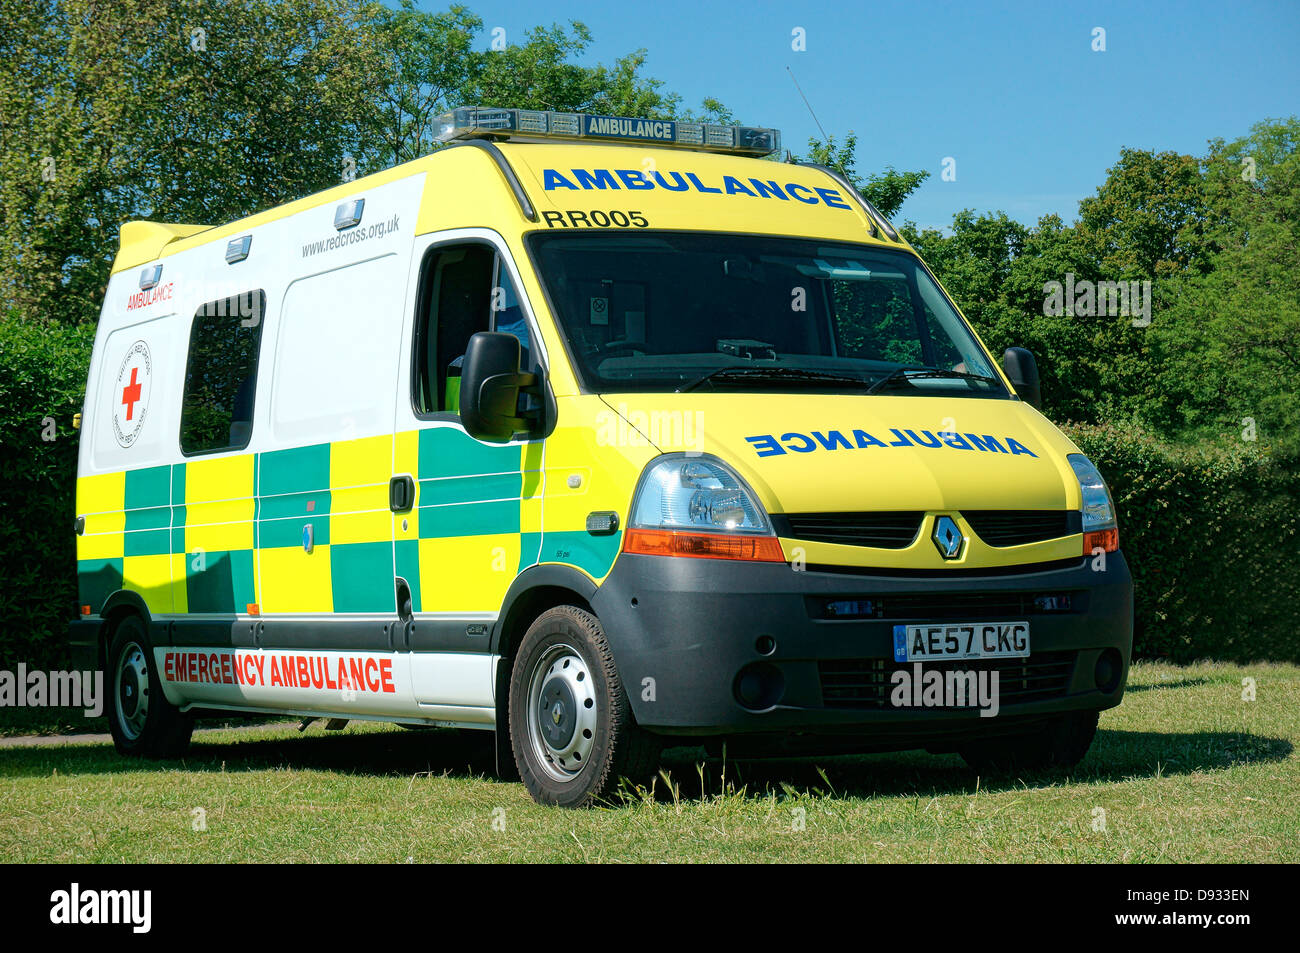 A stationary emergency ambulance, on standby at an outdoor summer fair. England, UK. - Stock Image